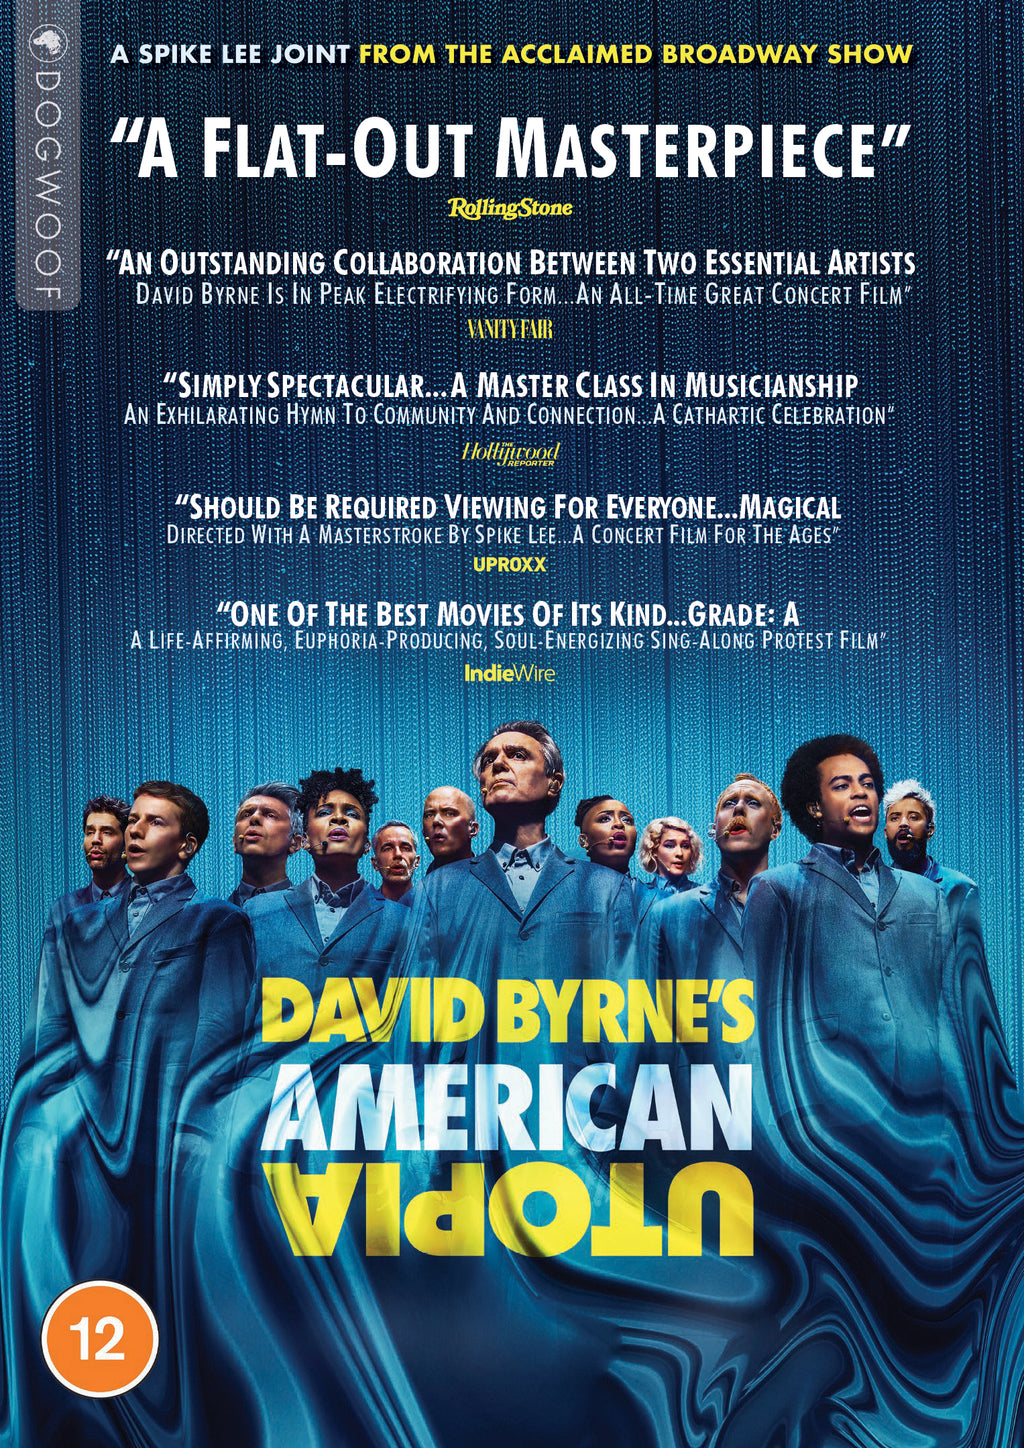 David Byrne's American Utopia DVD